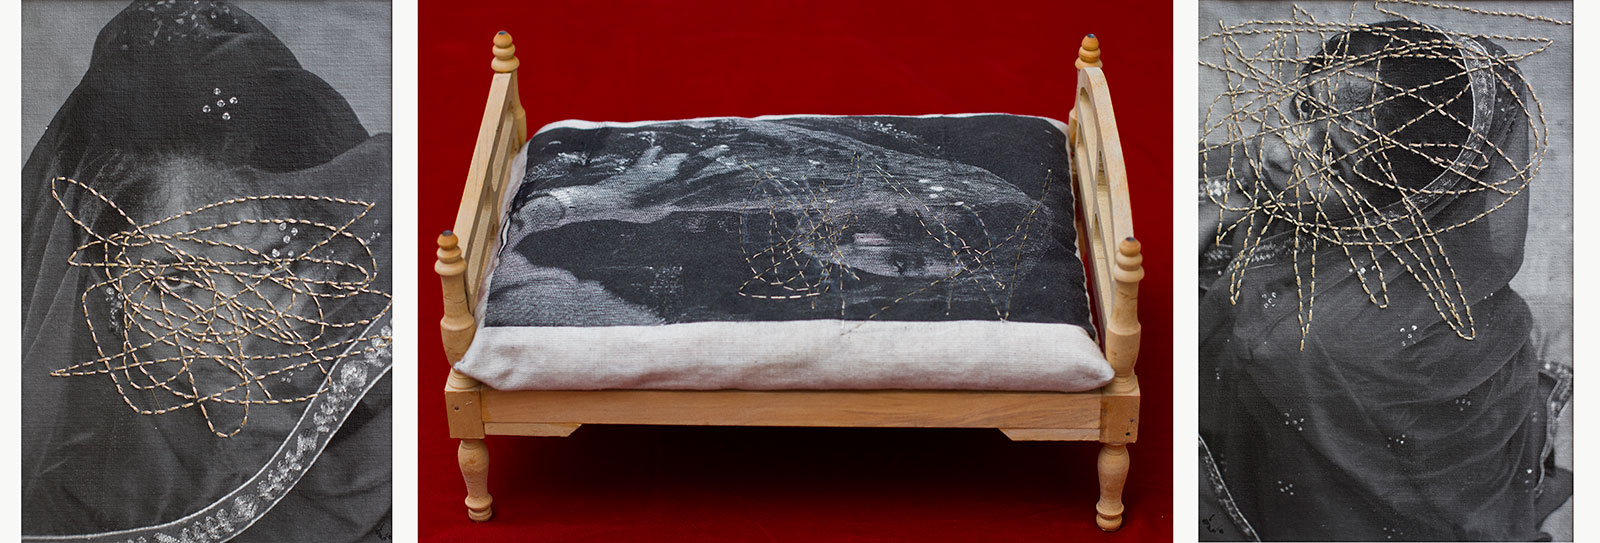 pillow with sewing over woman's face